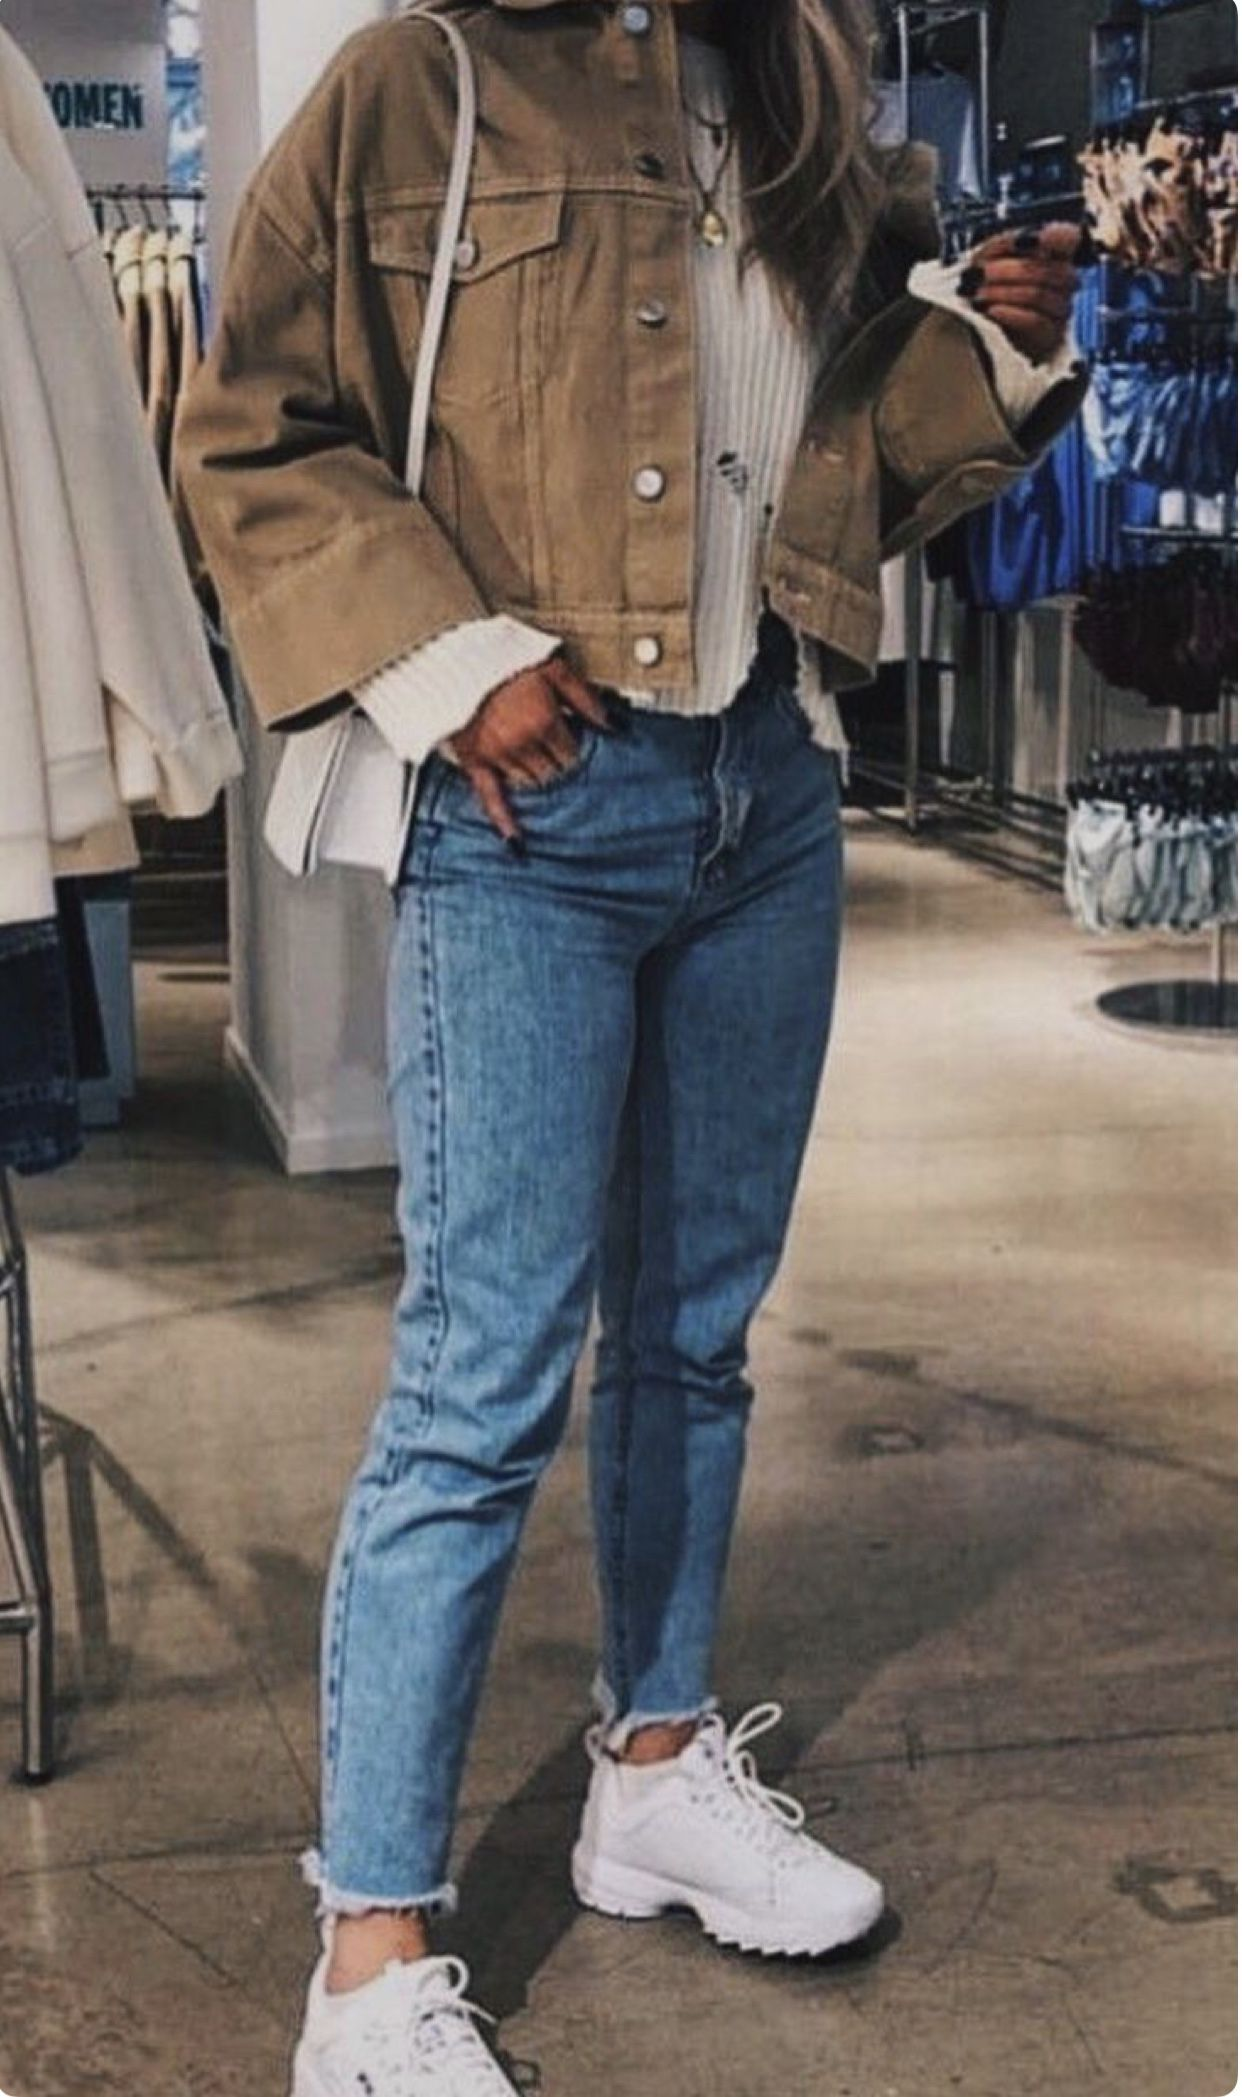 Pin By Evelyn Longoria On Clothing In 2020 Retro Outfits Cool Outfits Cute Casual Outfits